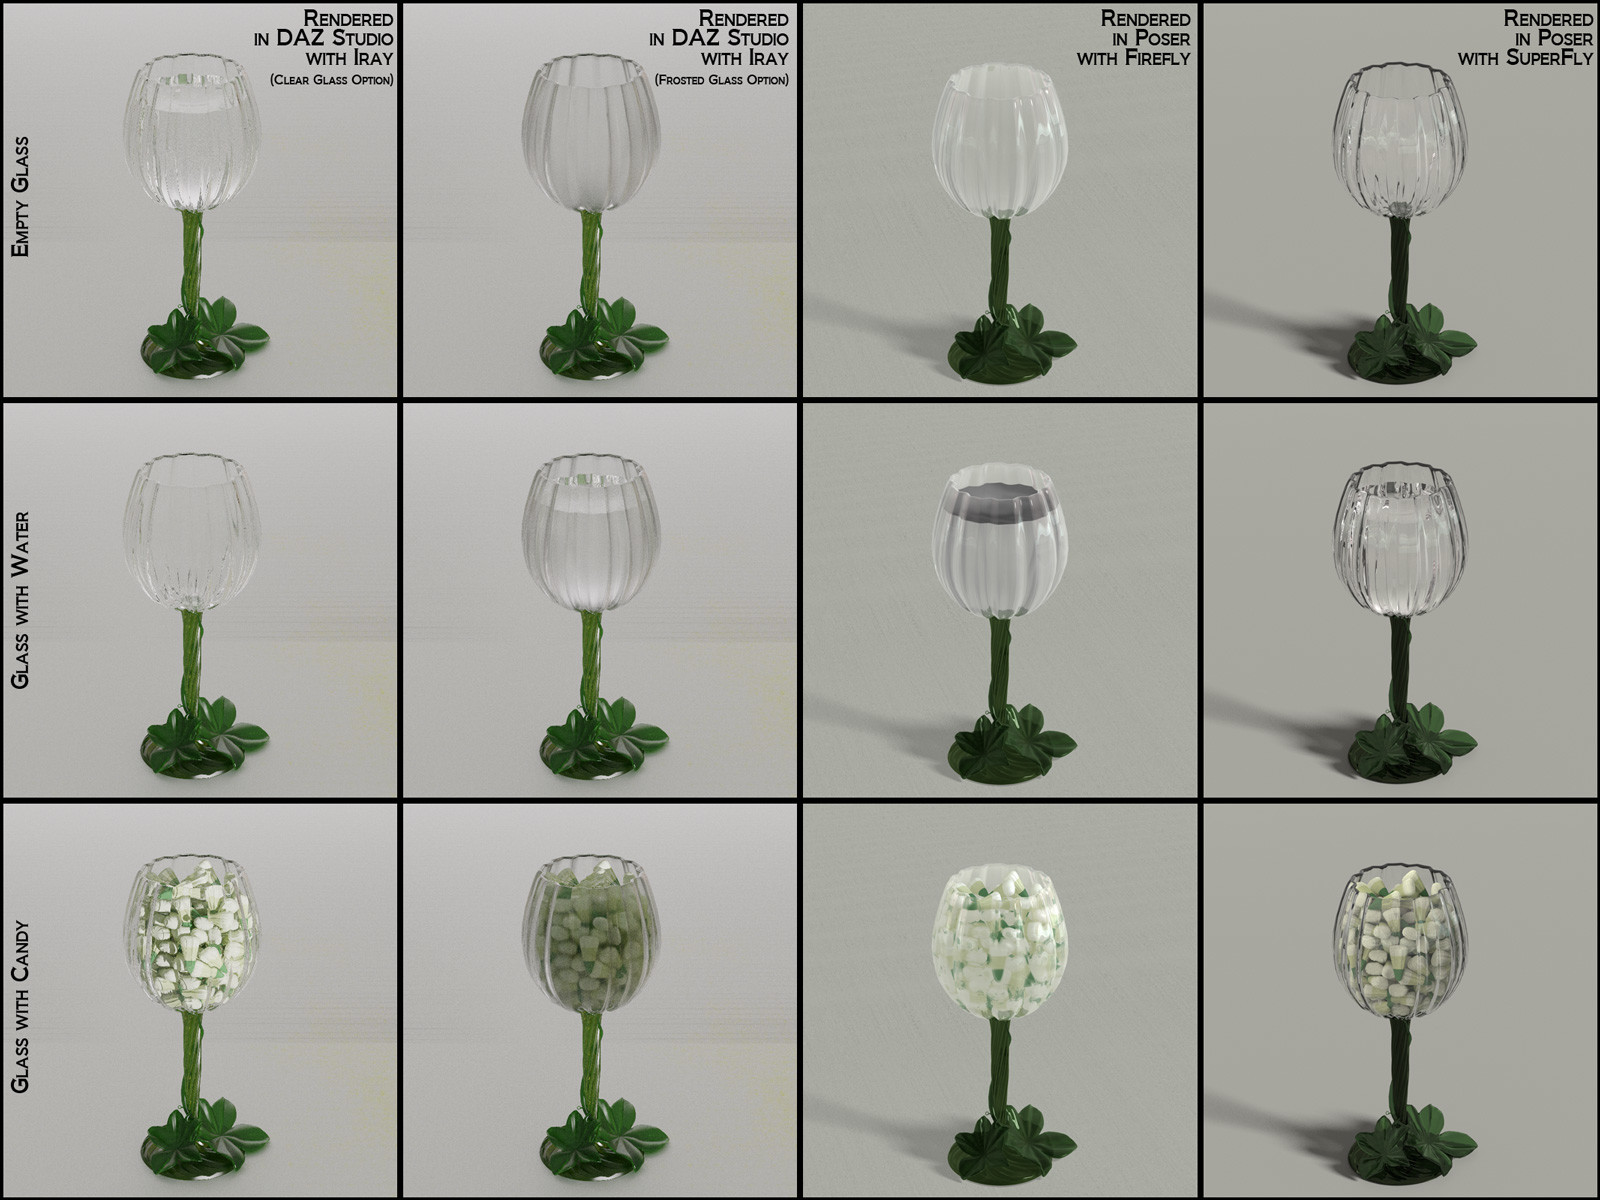 This shows the available options for the wine glass, with the differing materials available in each render engine.